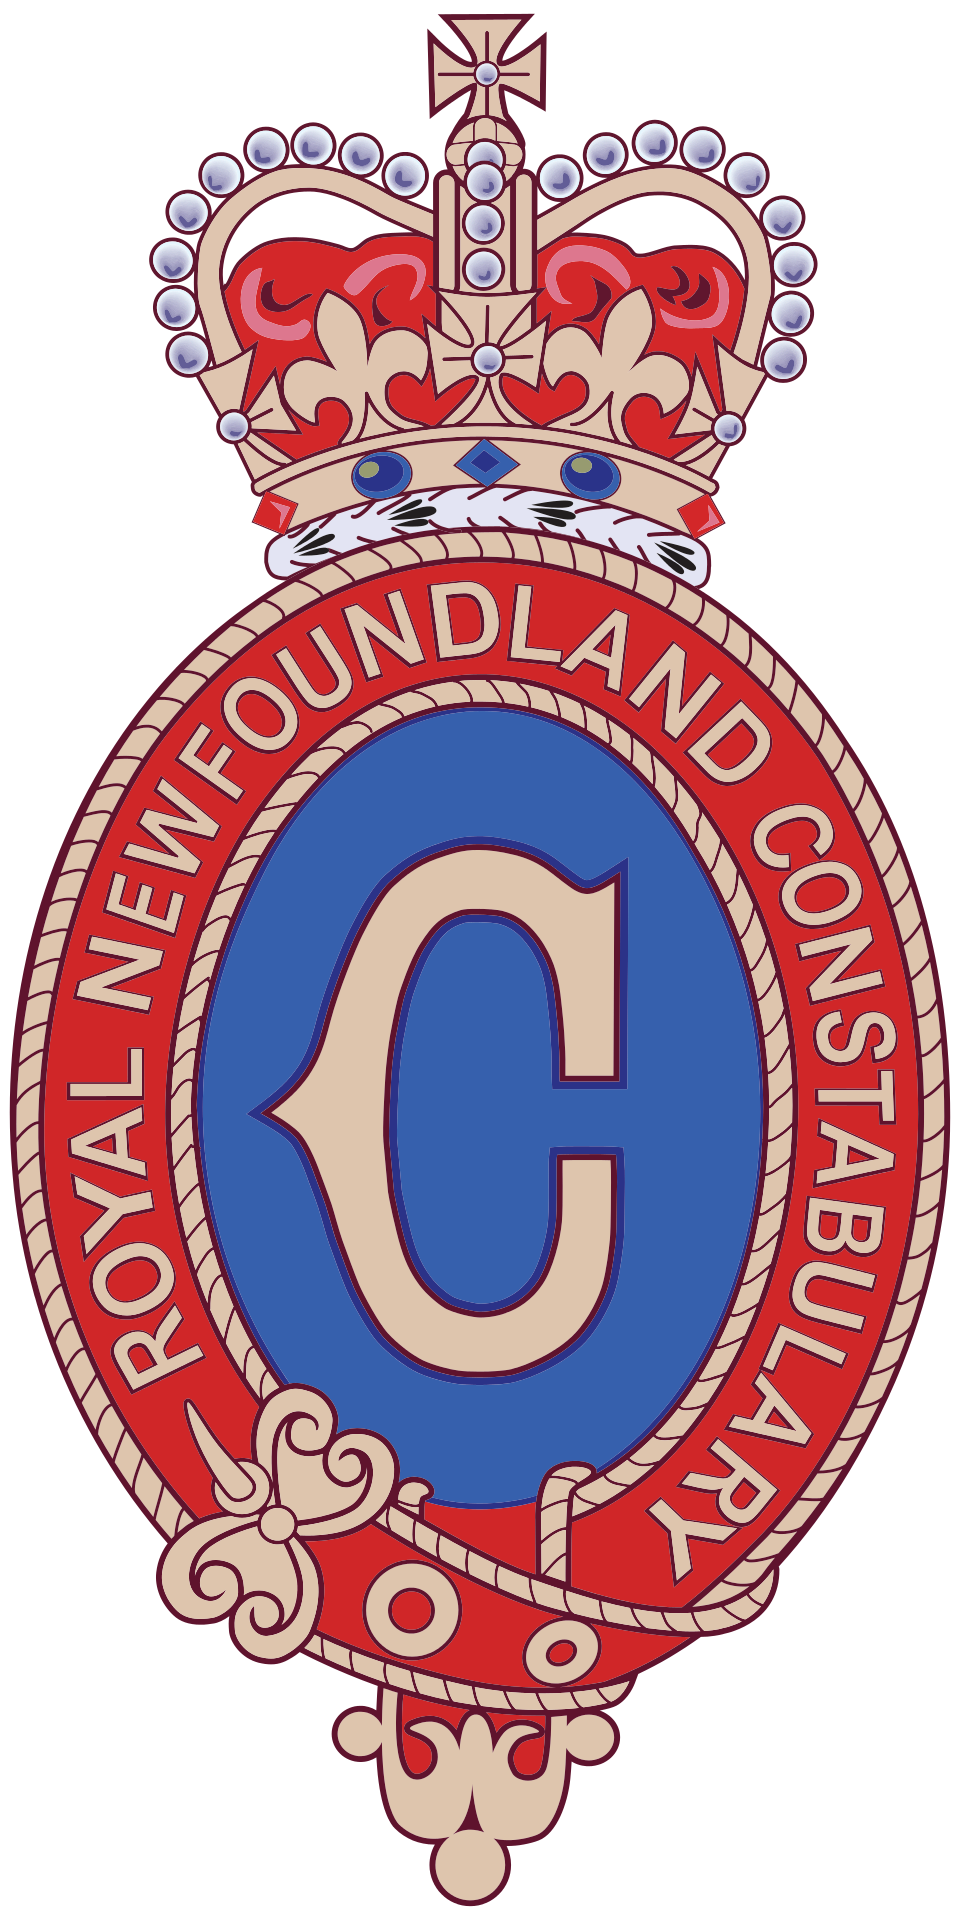 Royal Newfoundland Constabulary (RNC) is a police force in.